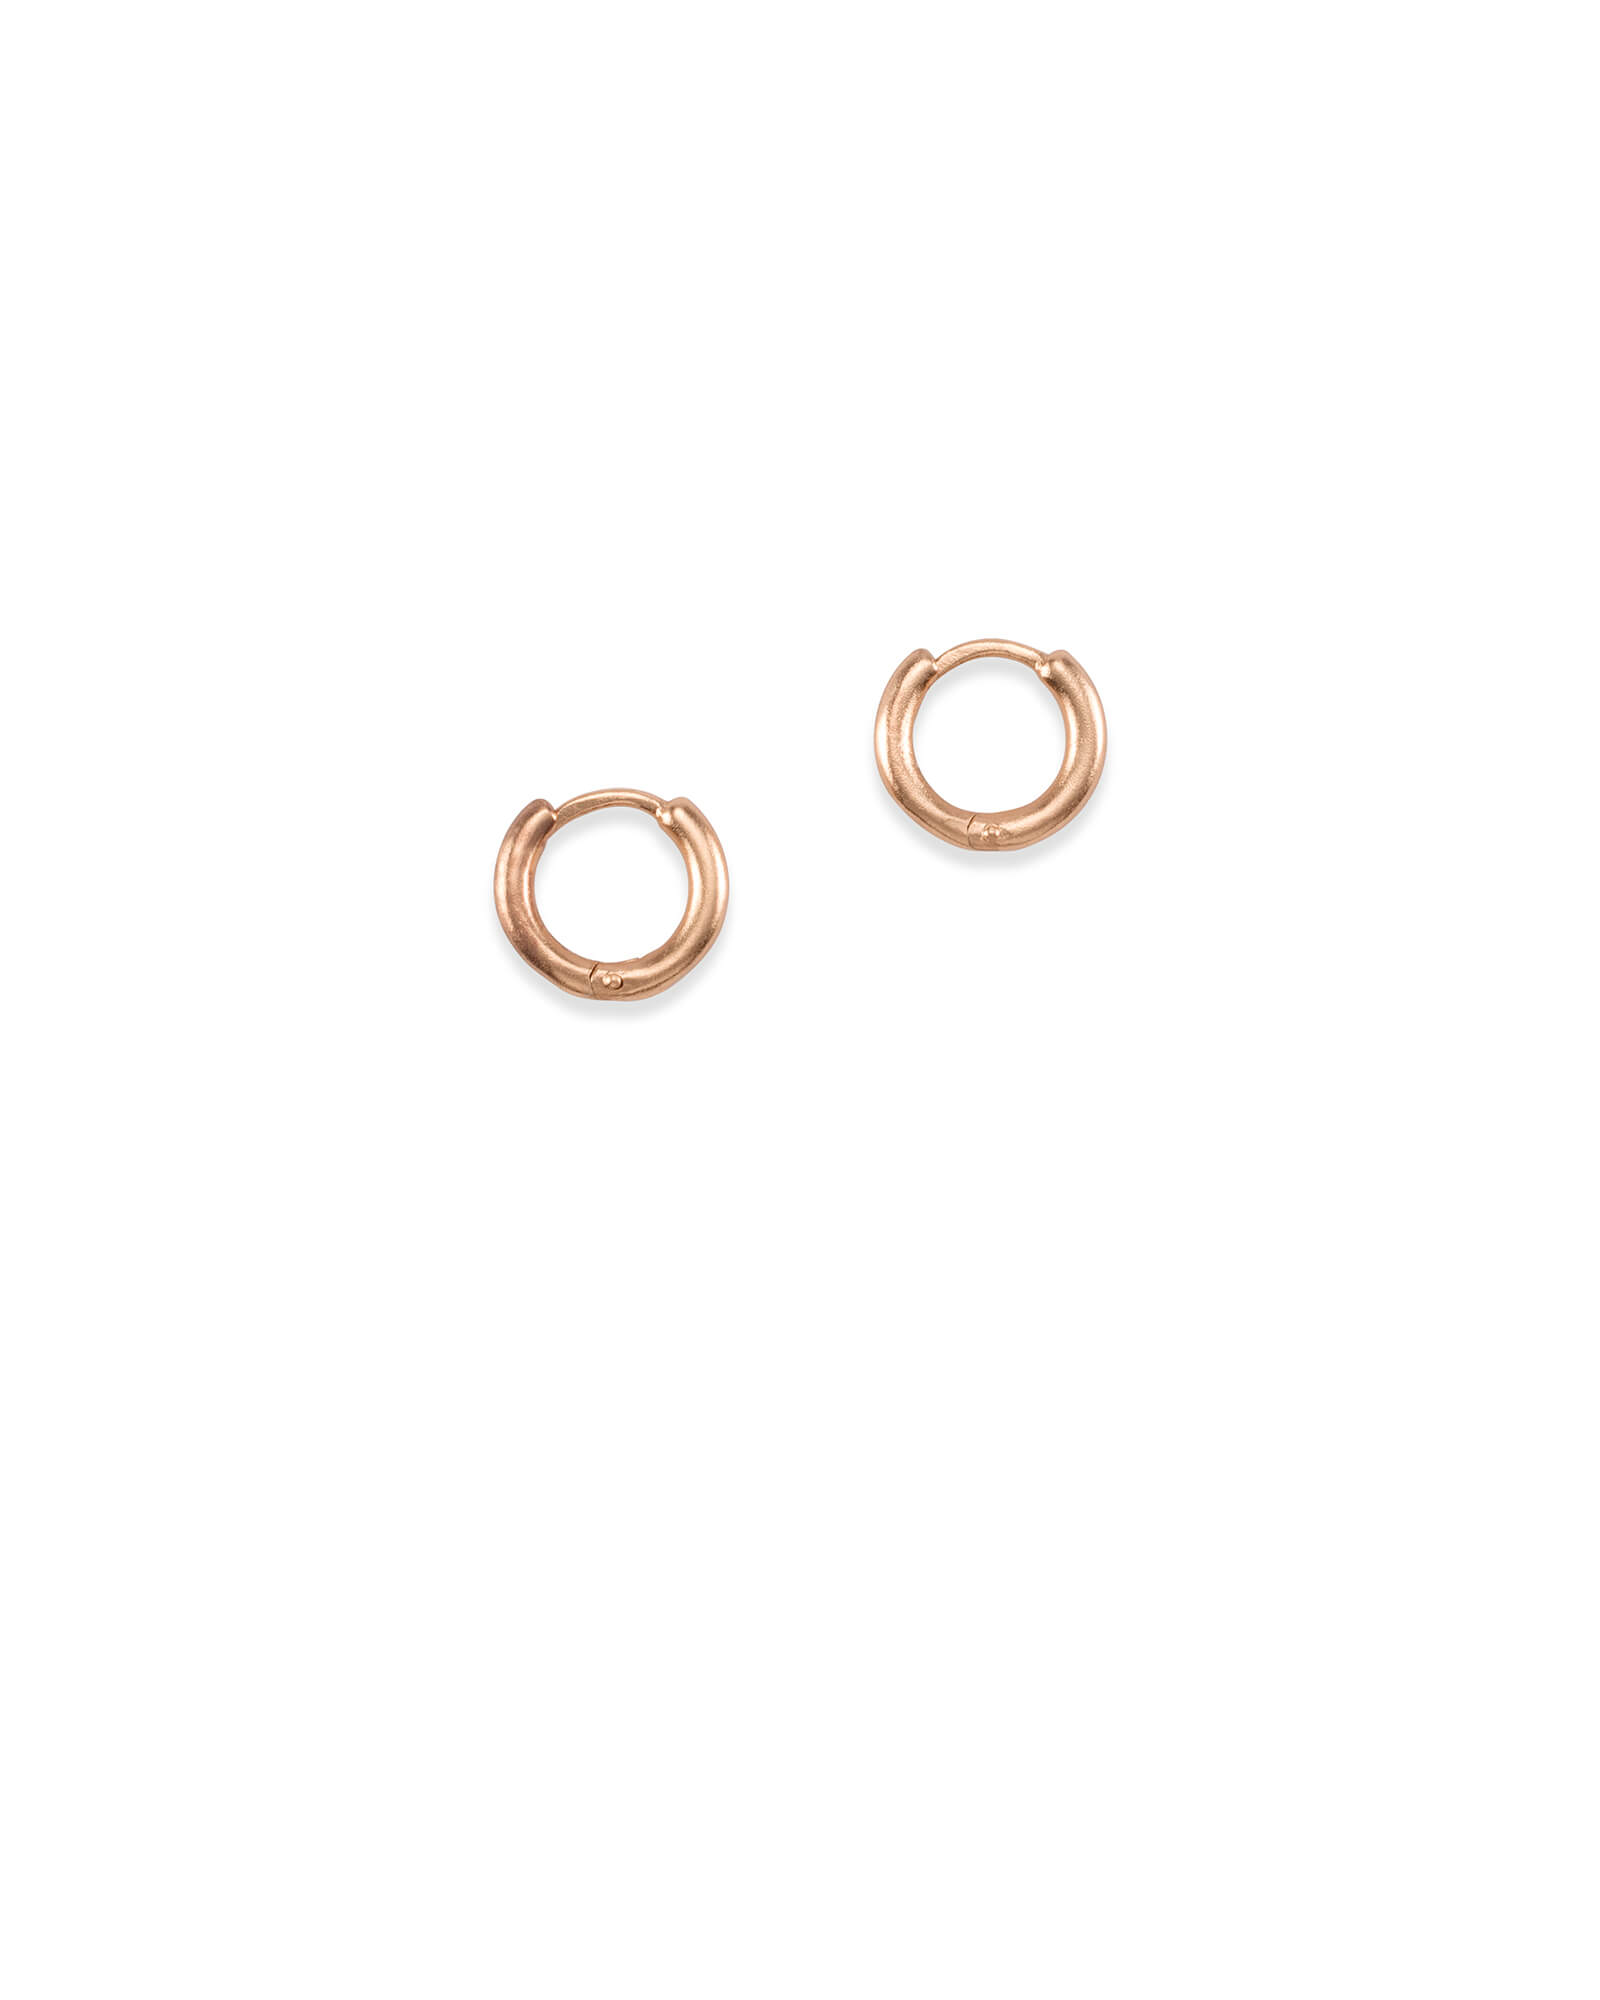 Huggie Hoop Earrings in Rose Gold